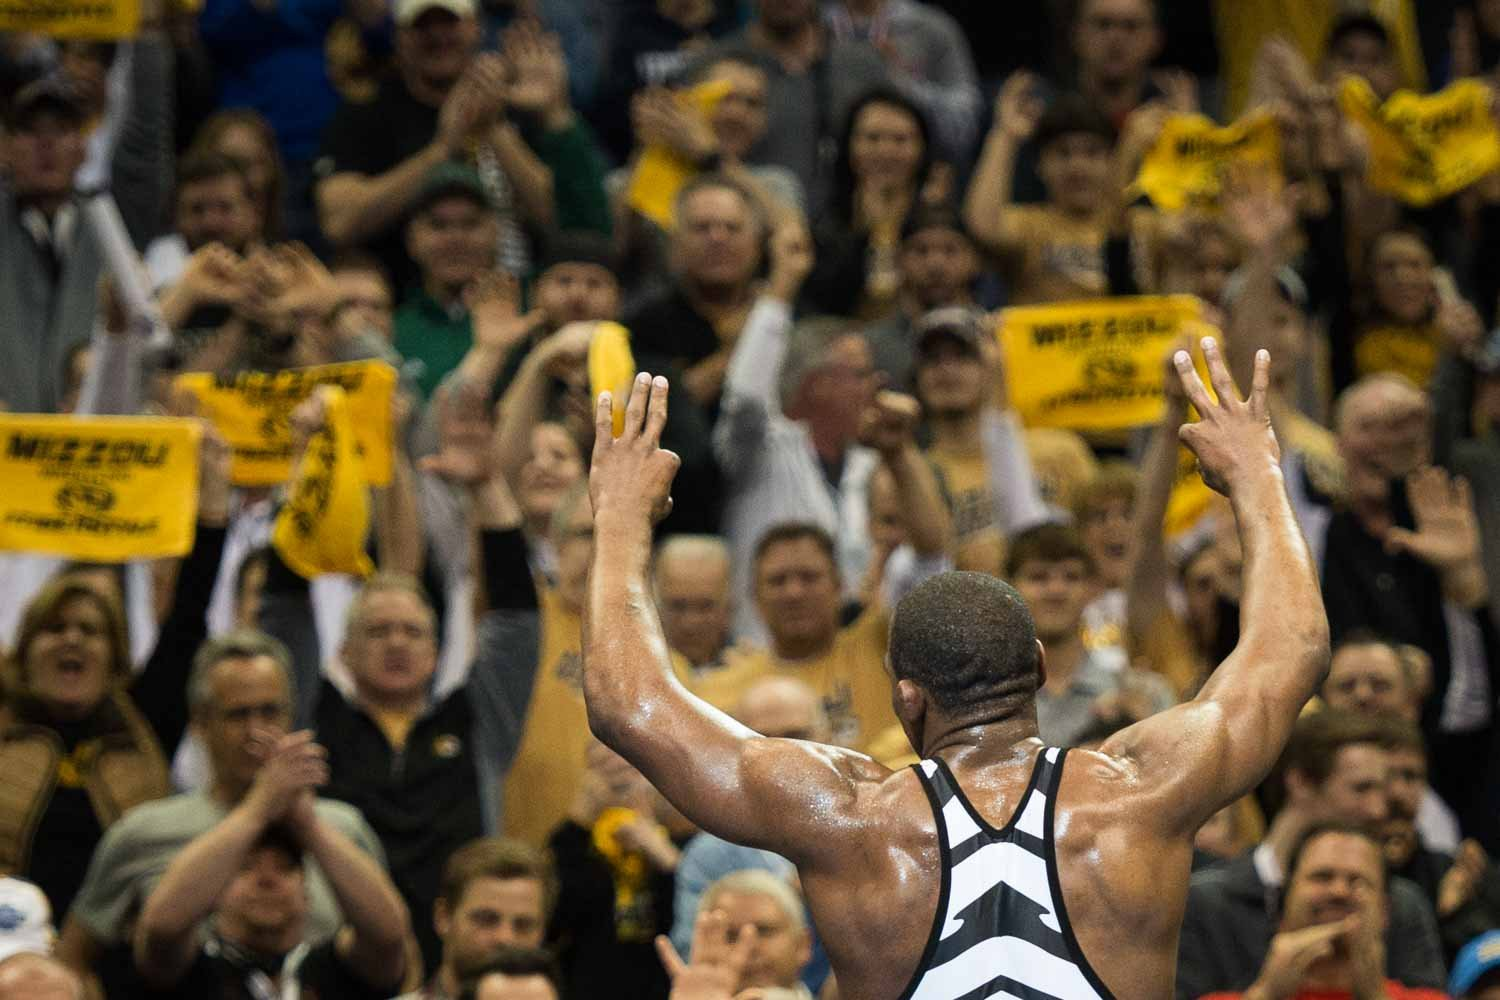 During his pursuit of title number three, J'Den Cox outscored opponents 28-6, not counting his first round pin. (Missouri Wrestling Facebook)